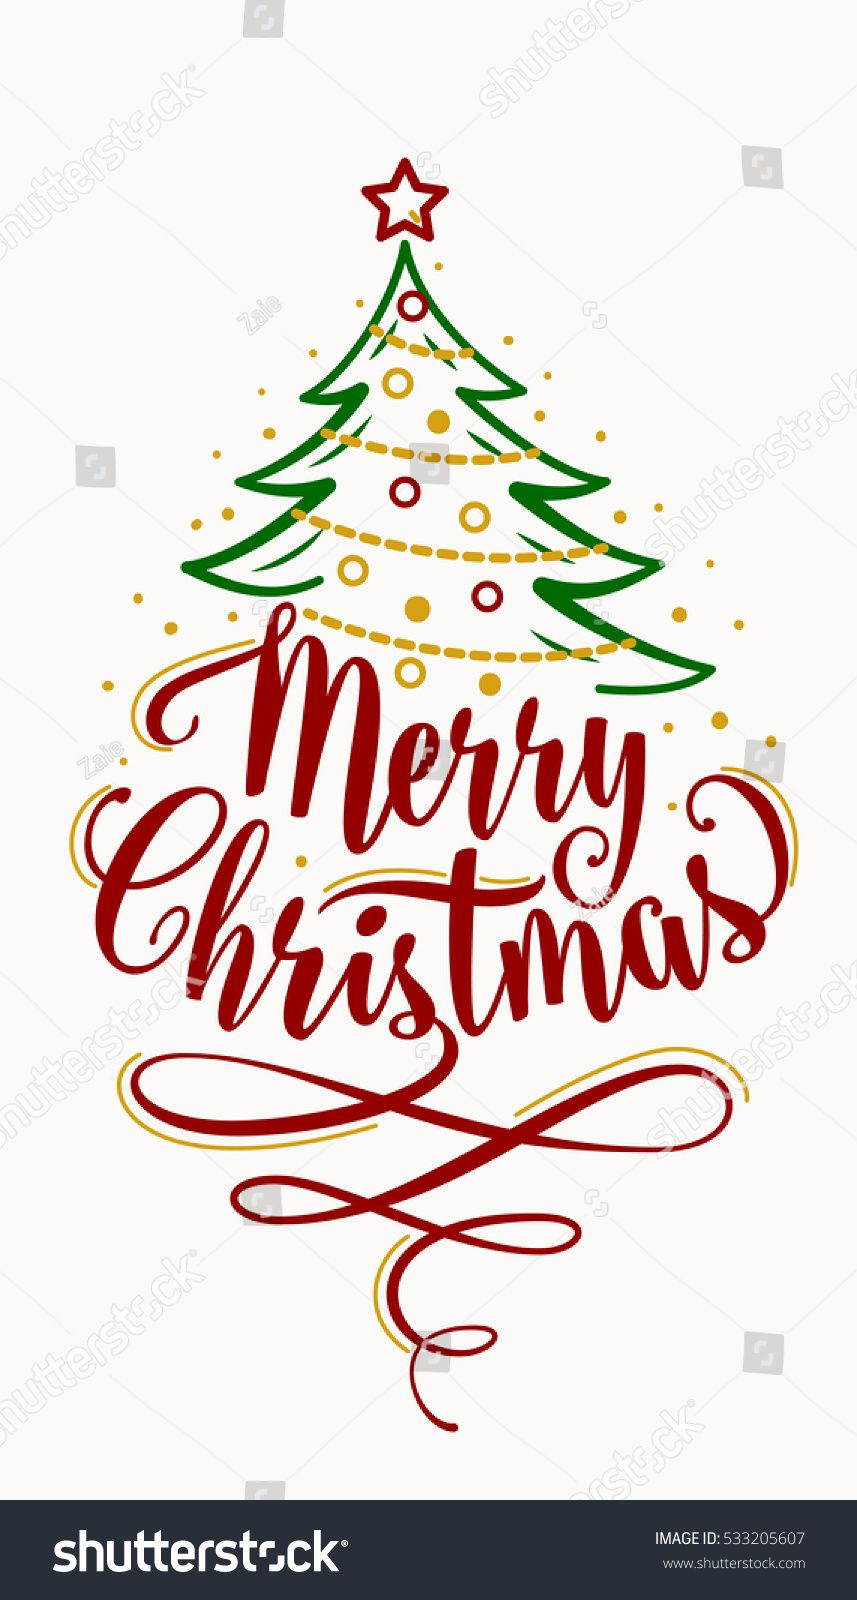 Vector Illustration Merry Christmas Lettering Text Stock Vector (Royalty Free) 533205607